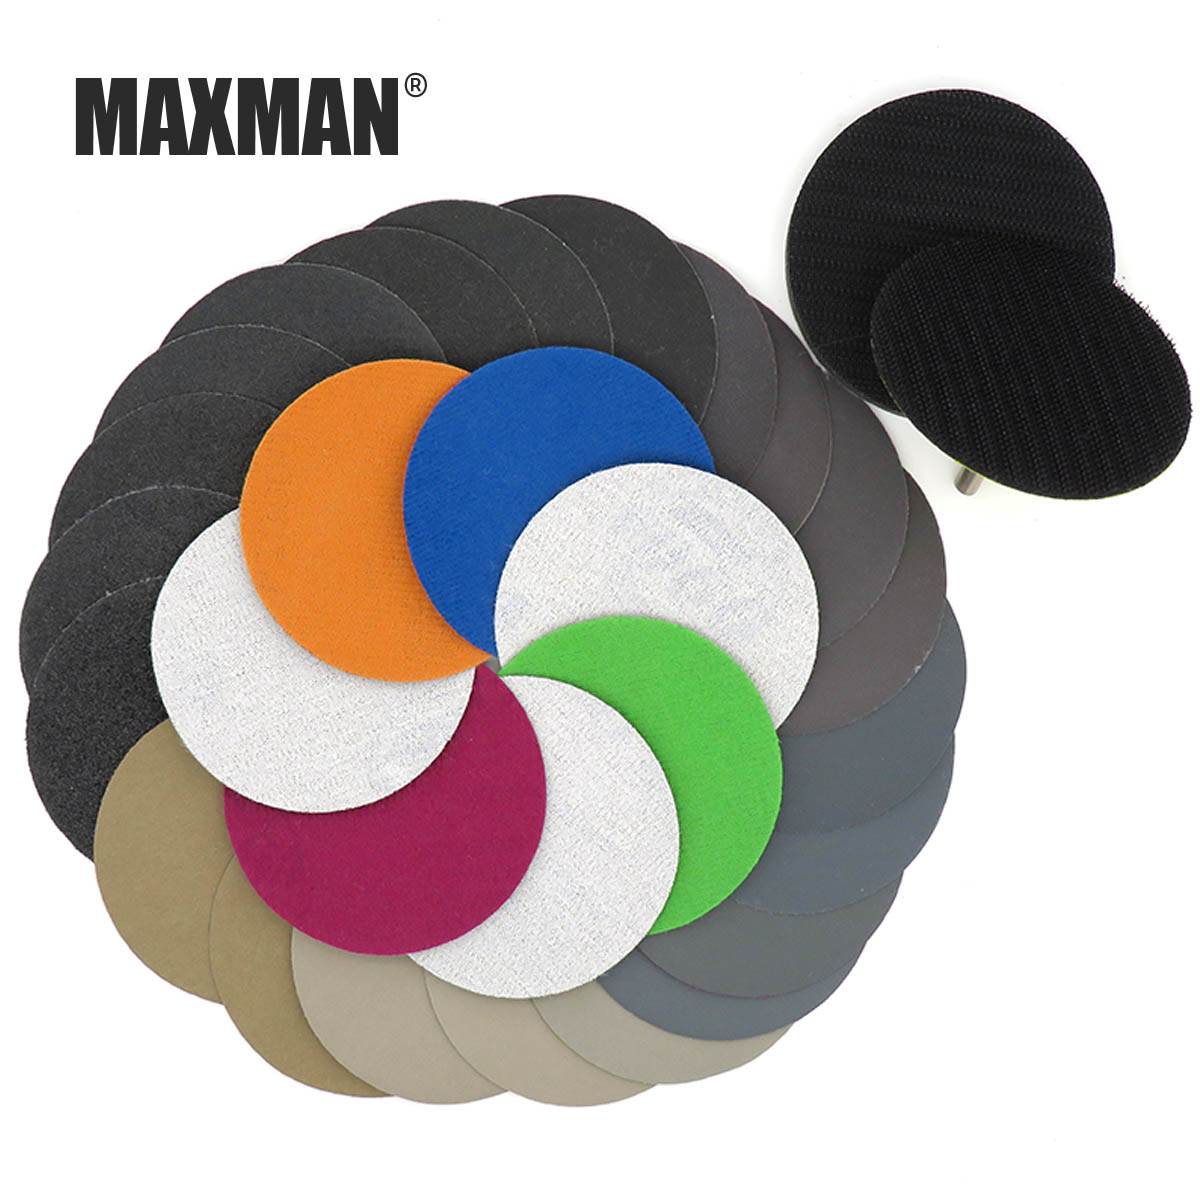 MAXMAN 3 inches Abrasives sandpaper Professional Polishing tools Wet dry Dual use Plastic jade car Polishing disc sanding pad